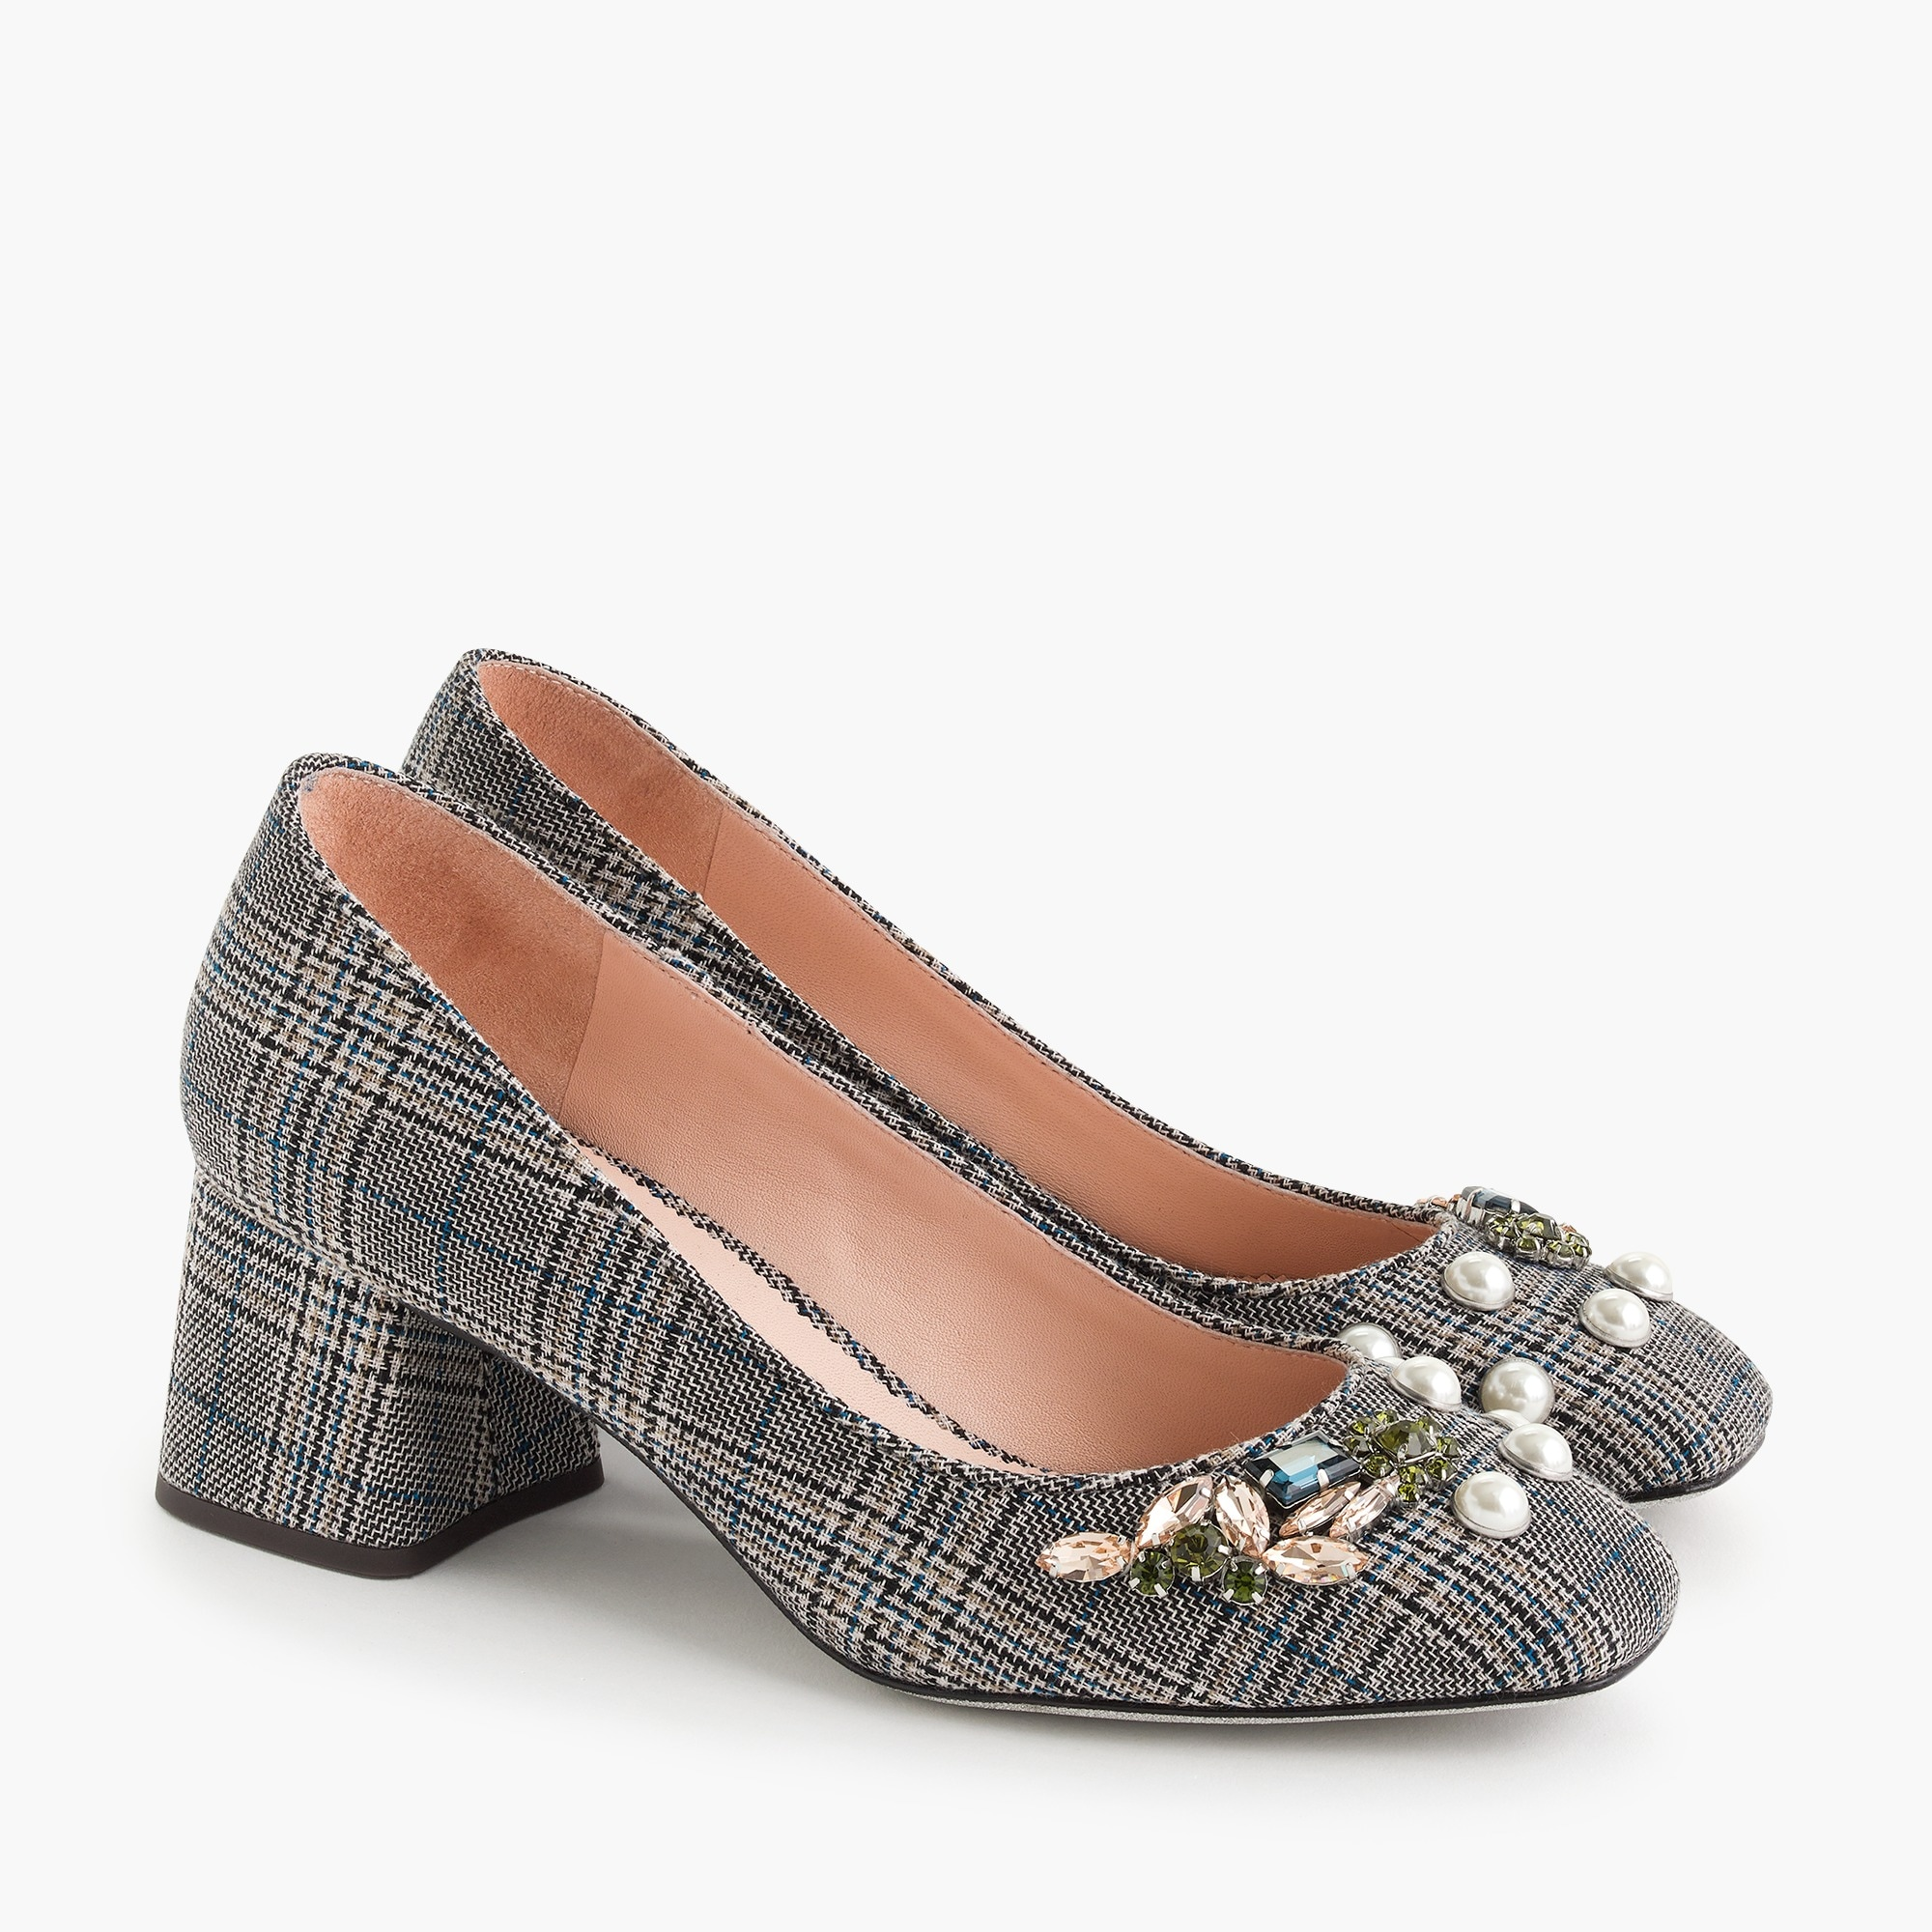 Image 3 for Block-heel pumps in embellished plaid